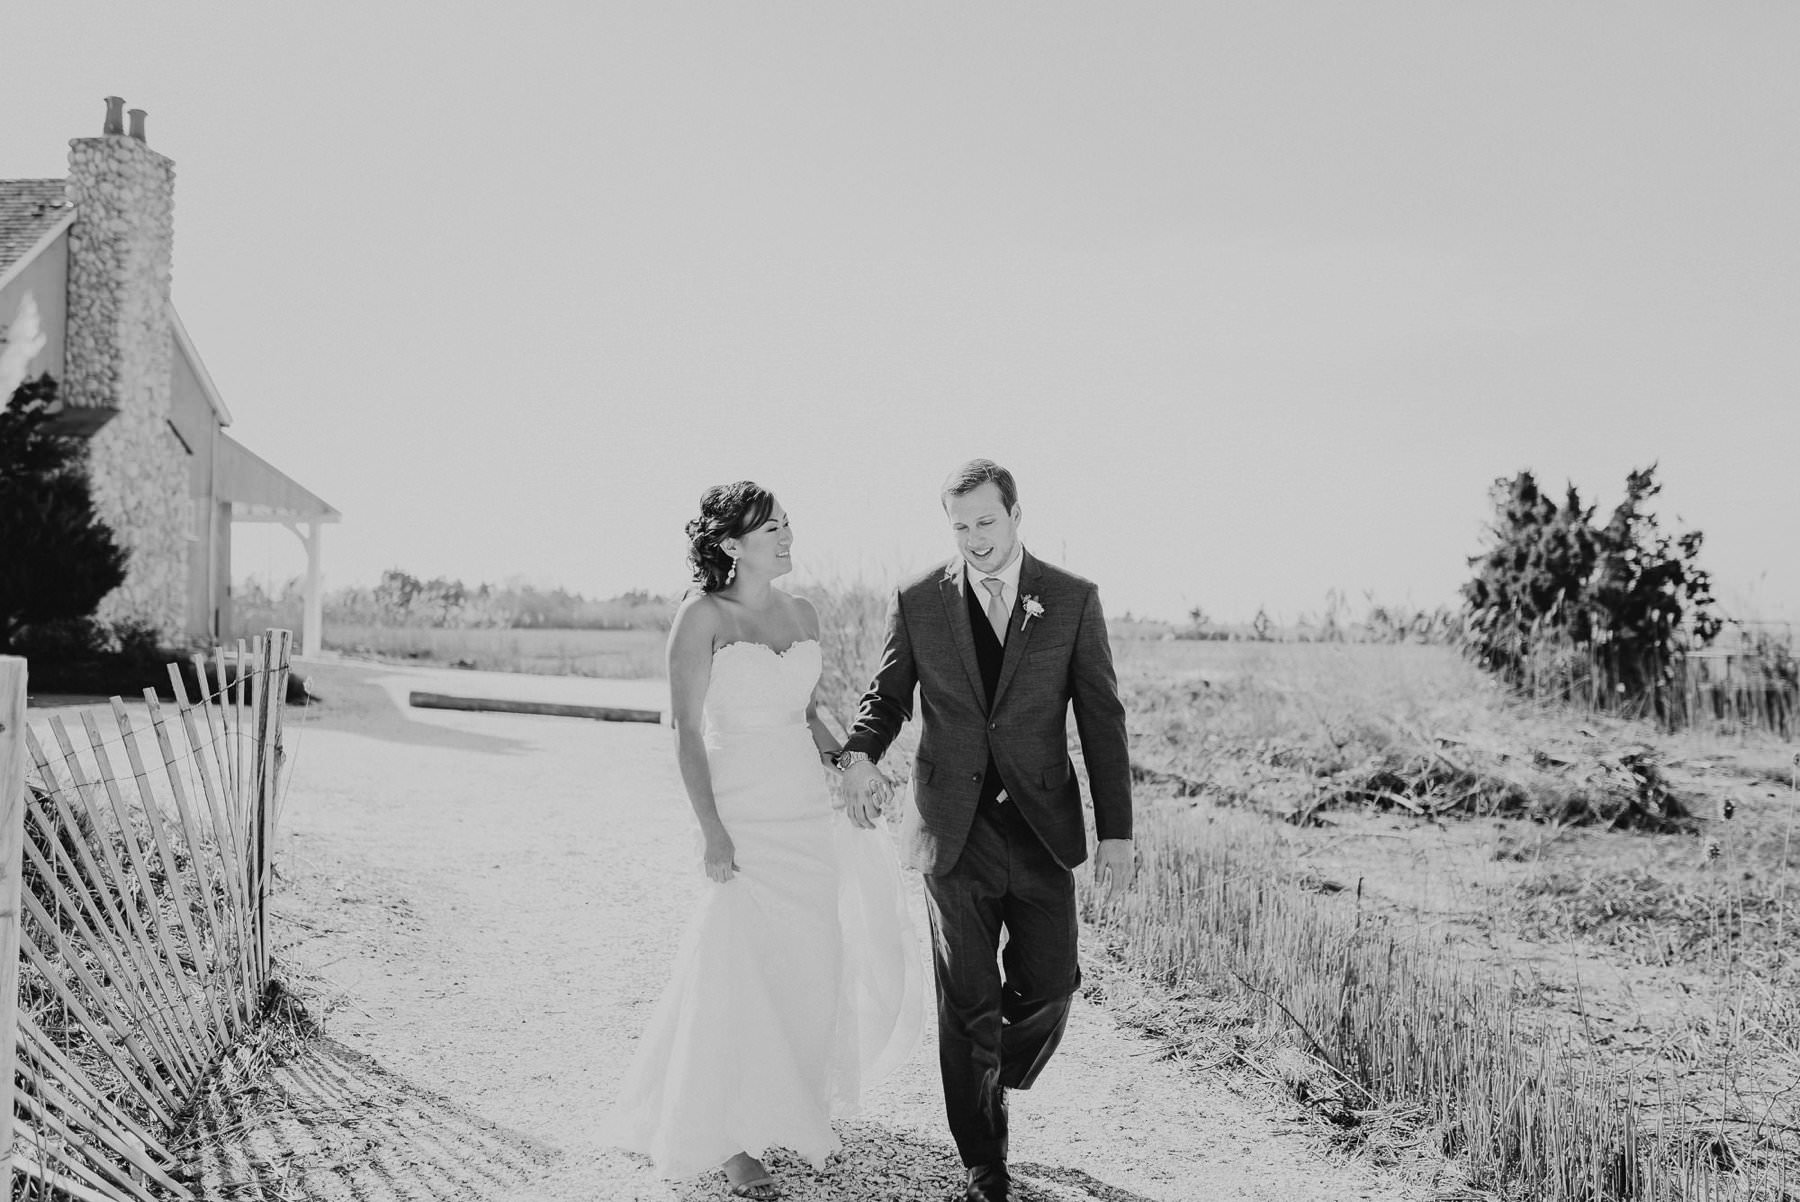 192-bonnett_island_estate_wedding-1.jpg